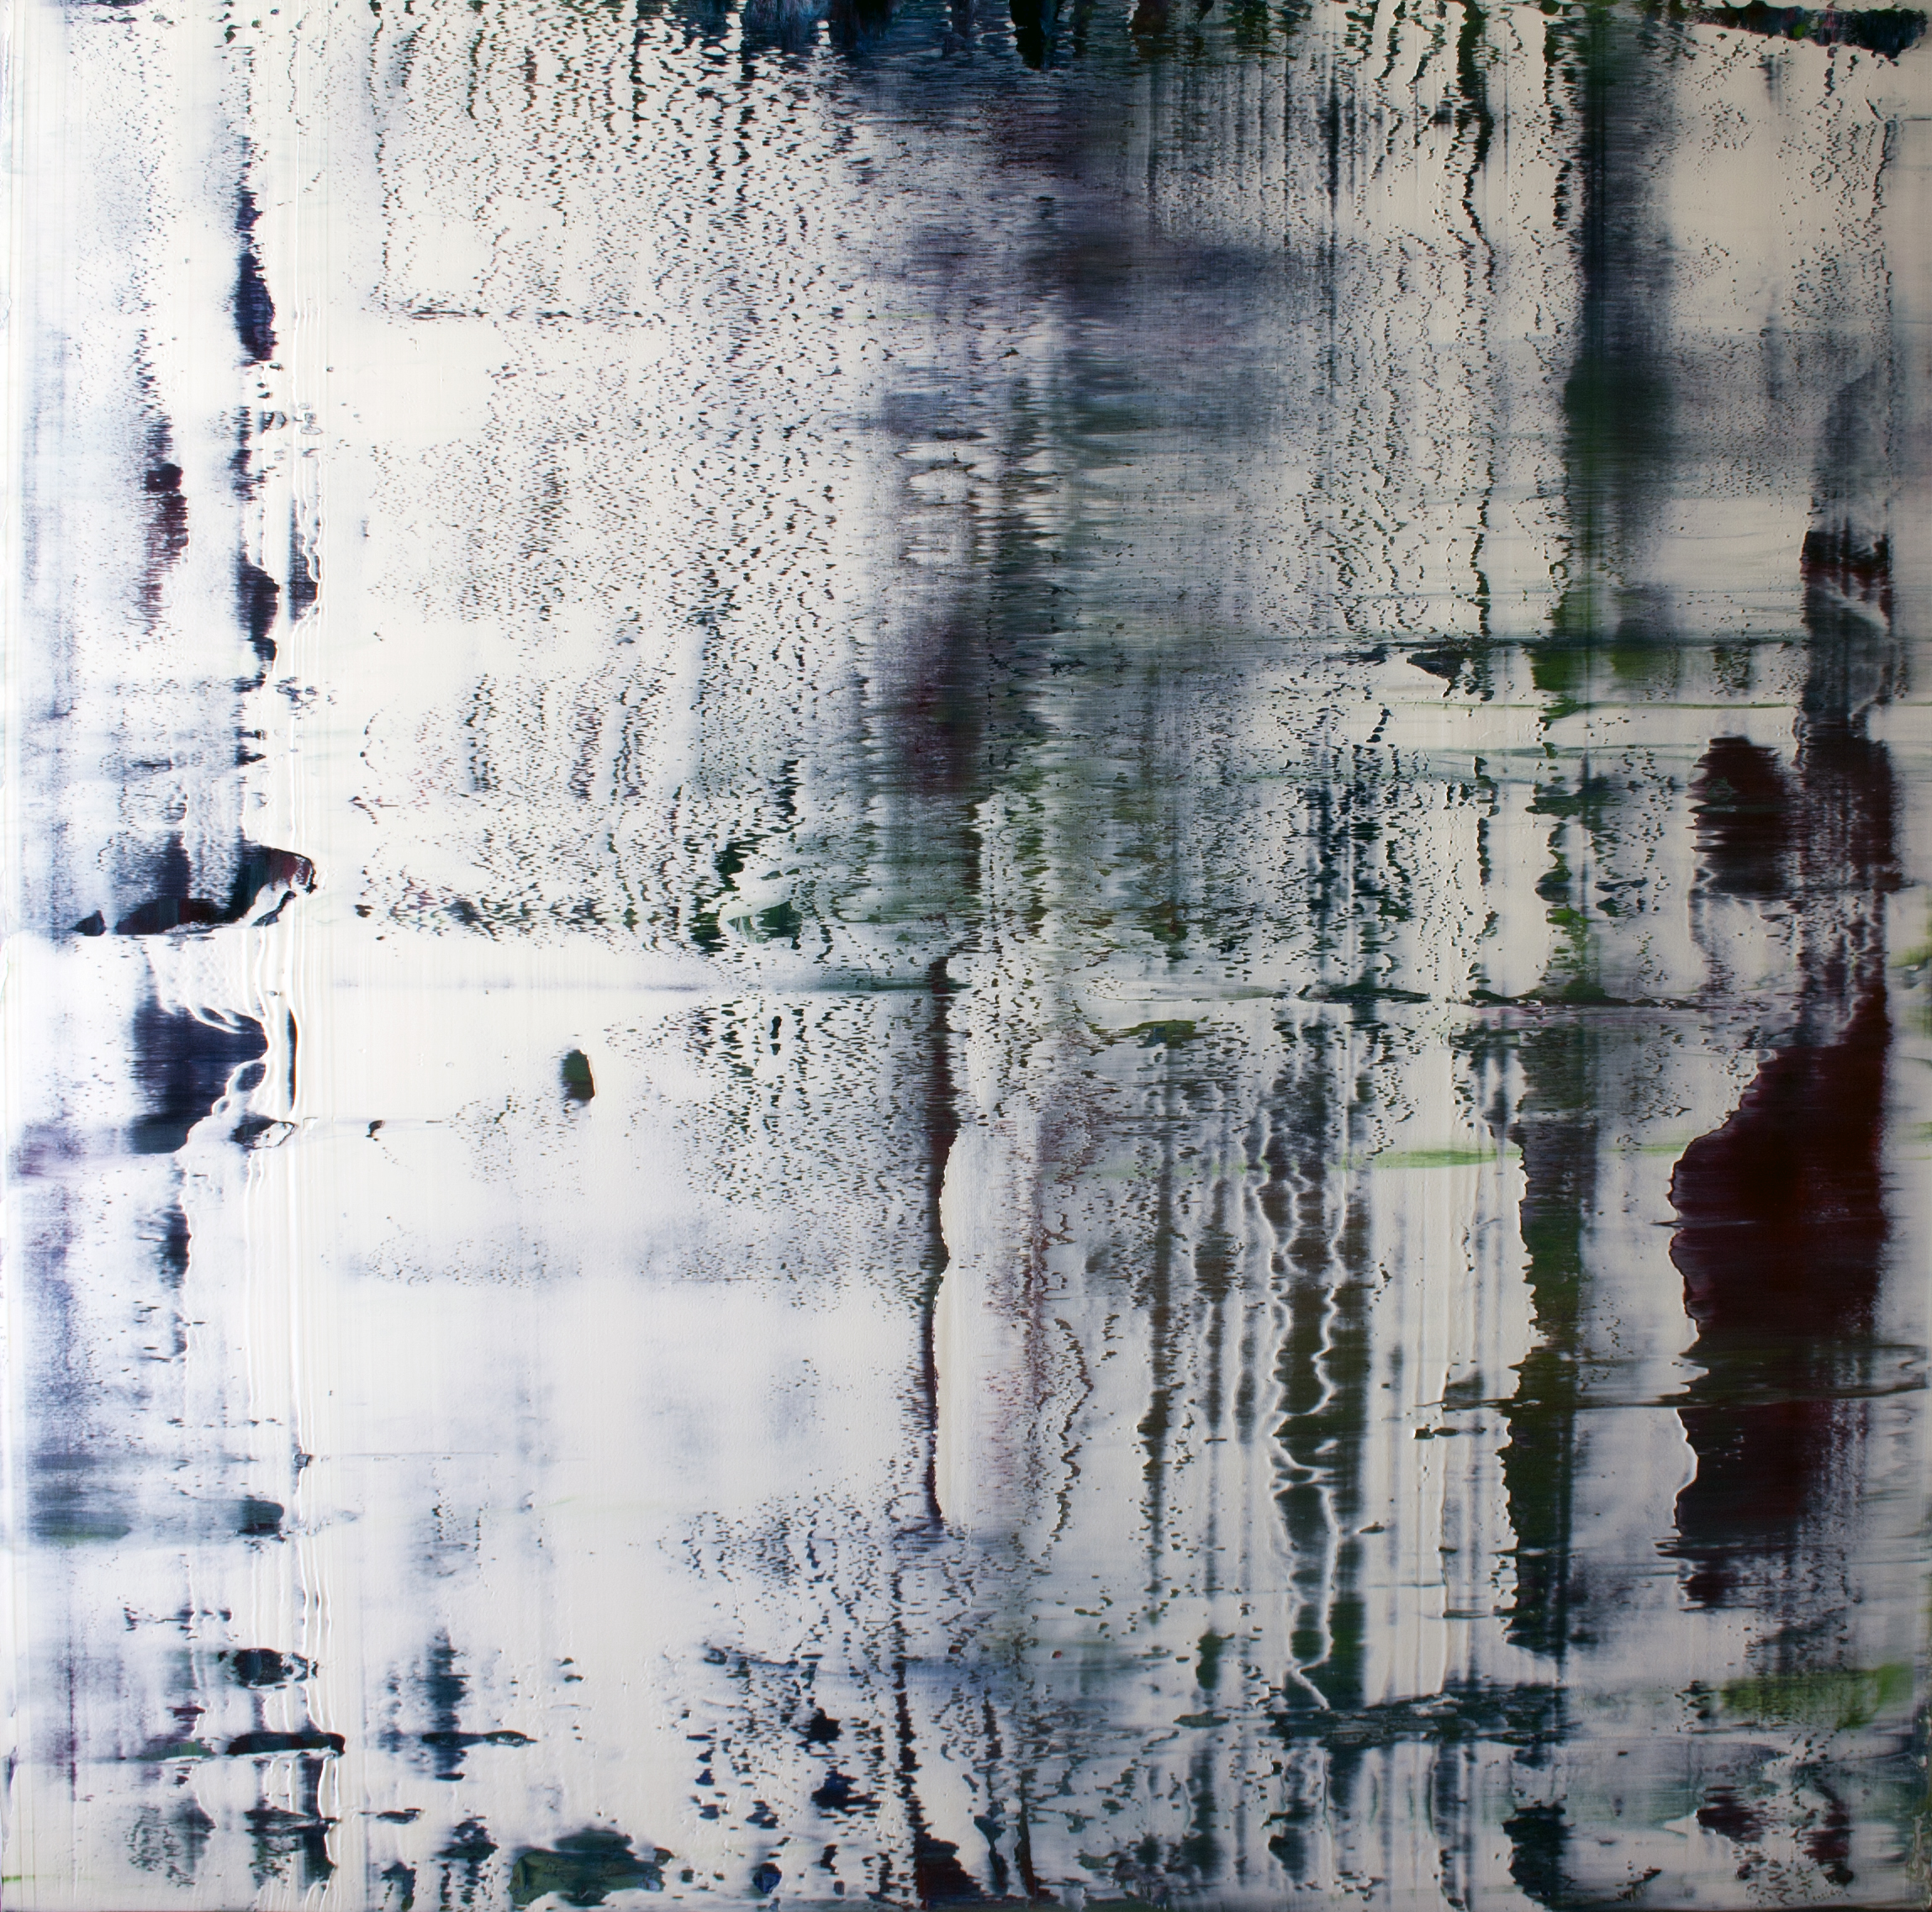 White Noise   Oil on canvas 100cm x 100cm © Anthony Wigglesworth - All Rights Reserved